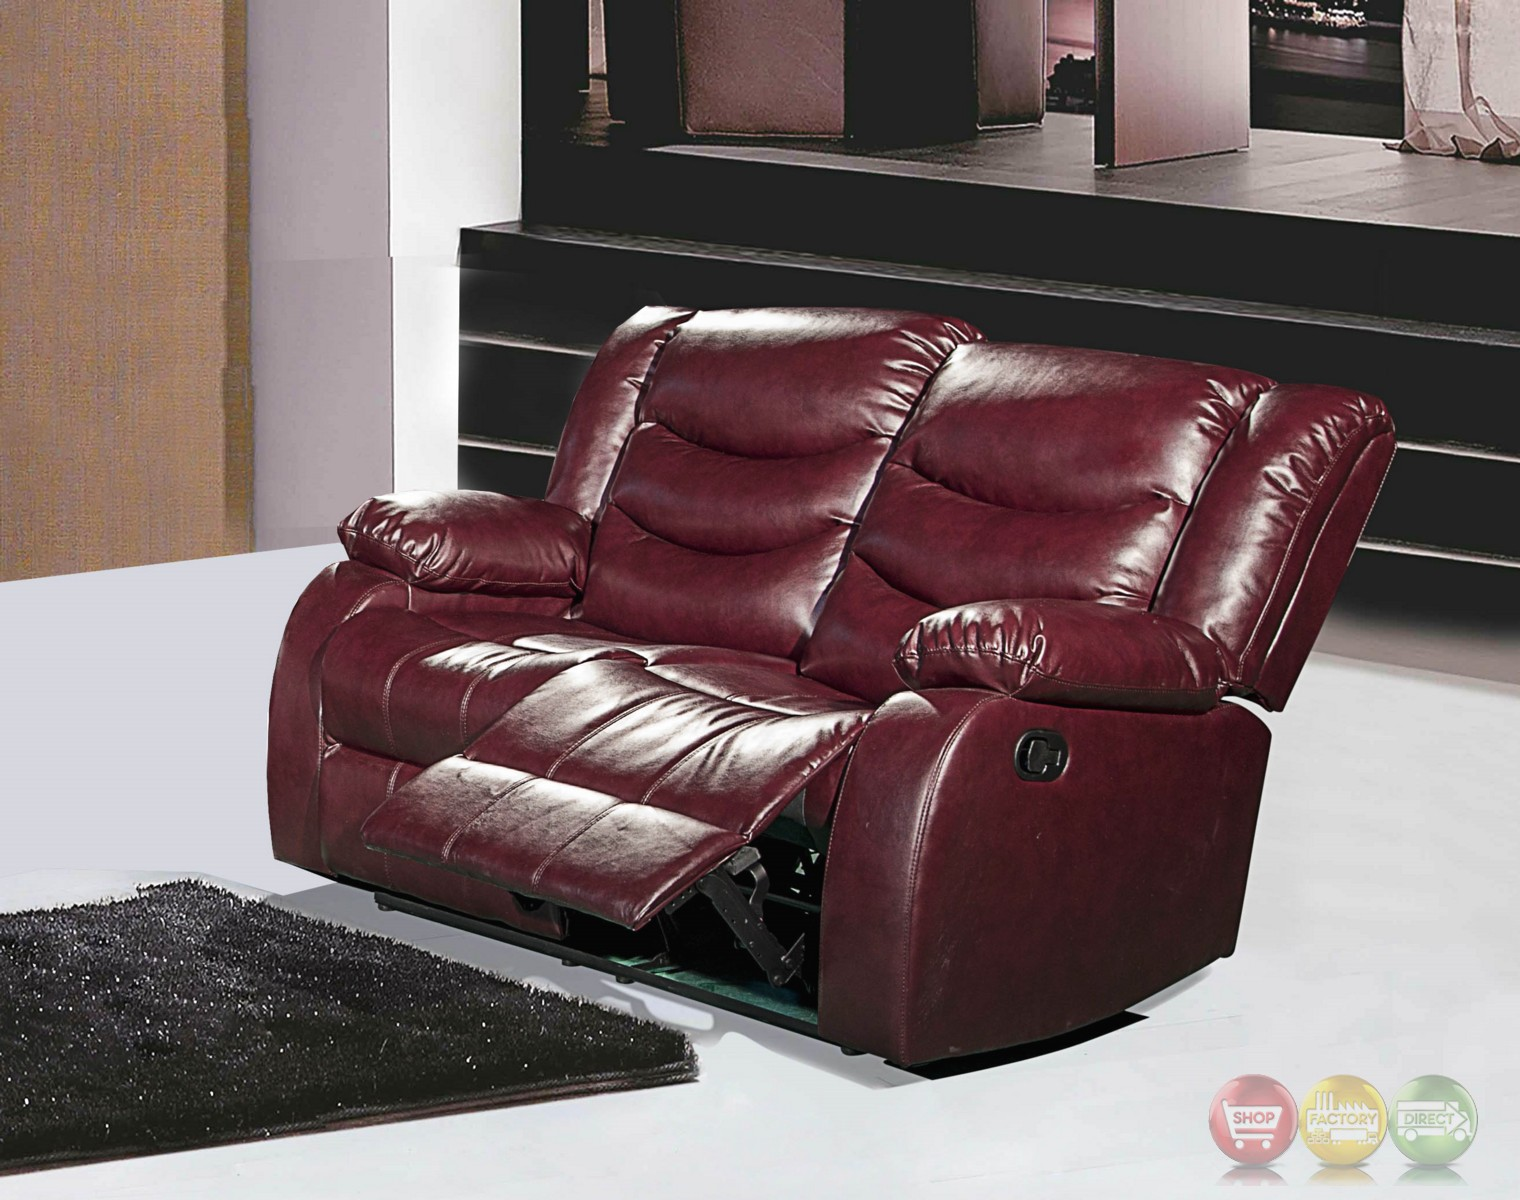 644burg burgundy leather reclining loveseat with pillow arms Burgundy leather loveseat